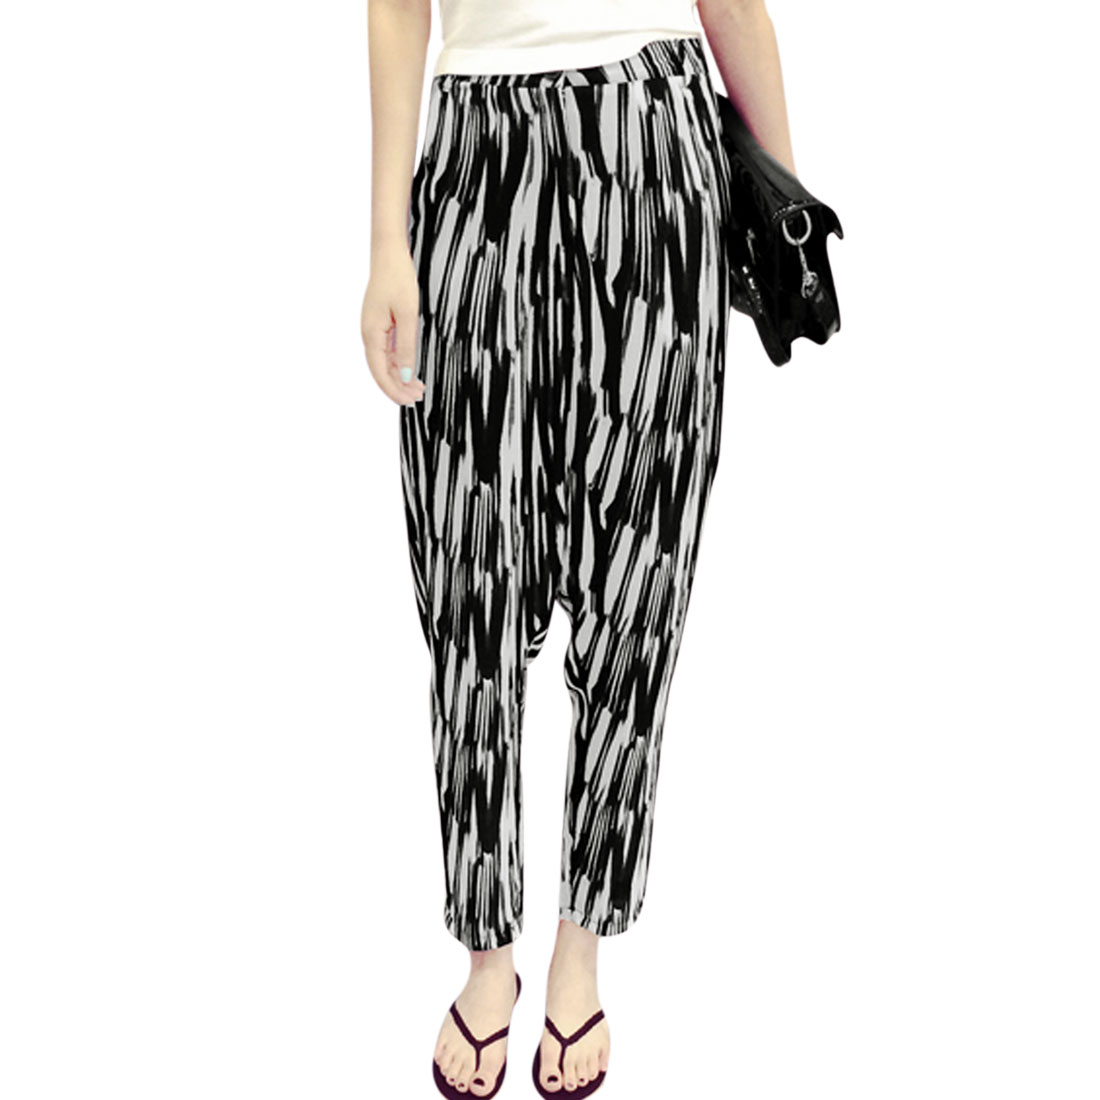 Allegra K Women's Belt Loop Zip Up Novelty Prints Harem Style Pants Black (Size S / 4)